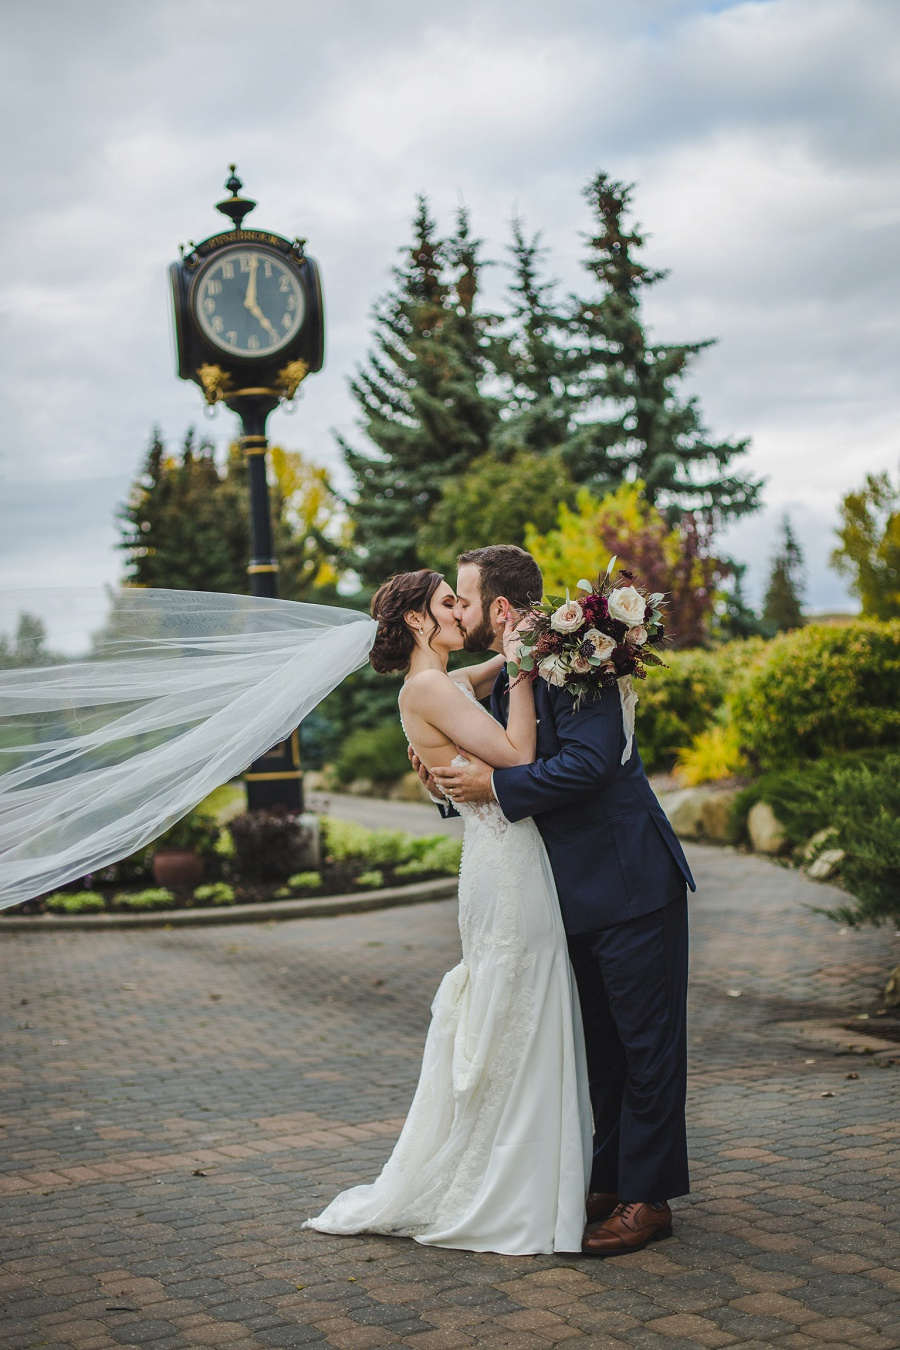 calgary pinebrook golf and country club wedding outdoor clock bridal veil blue suit